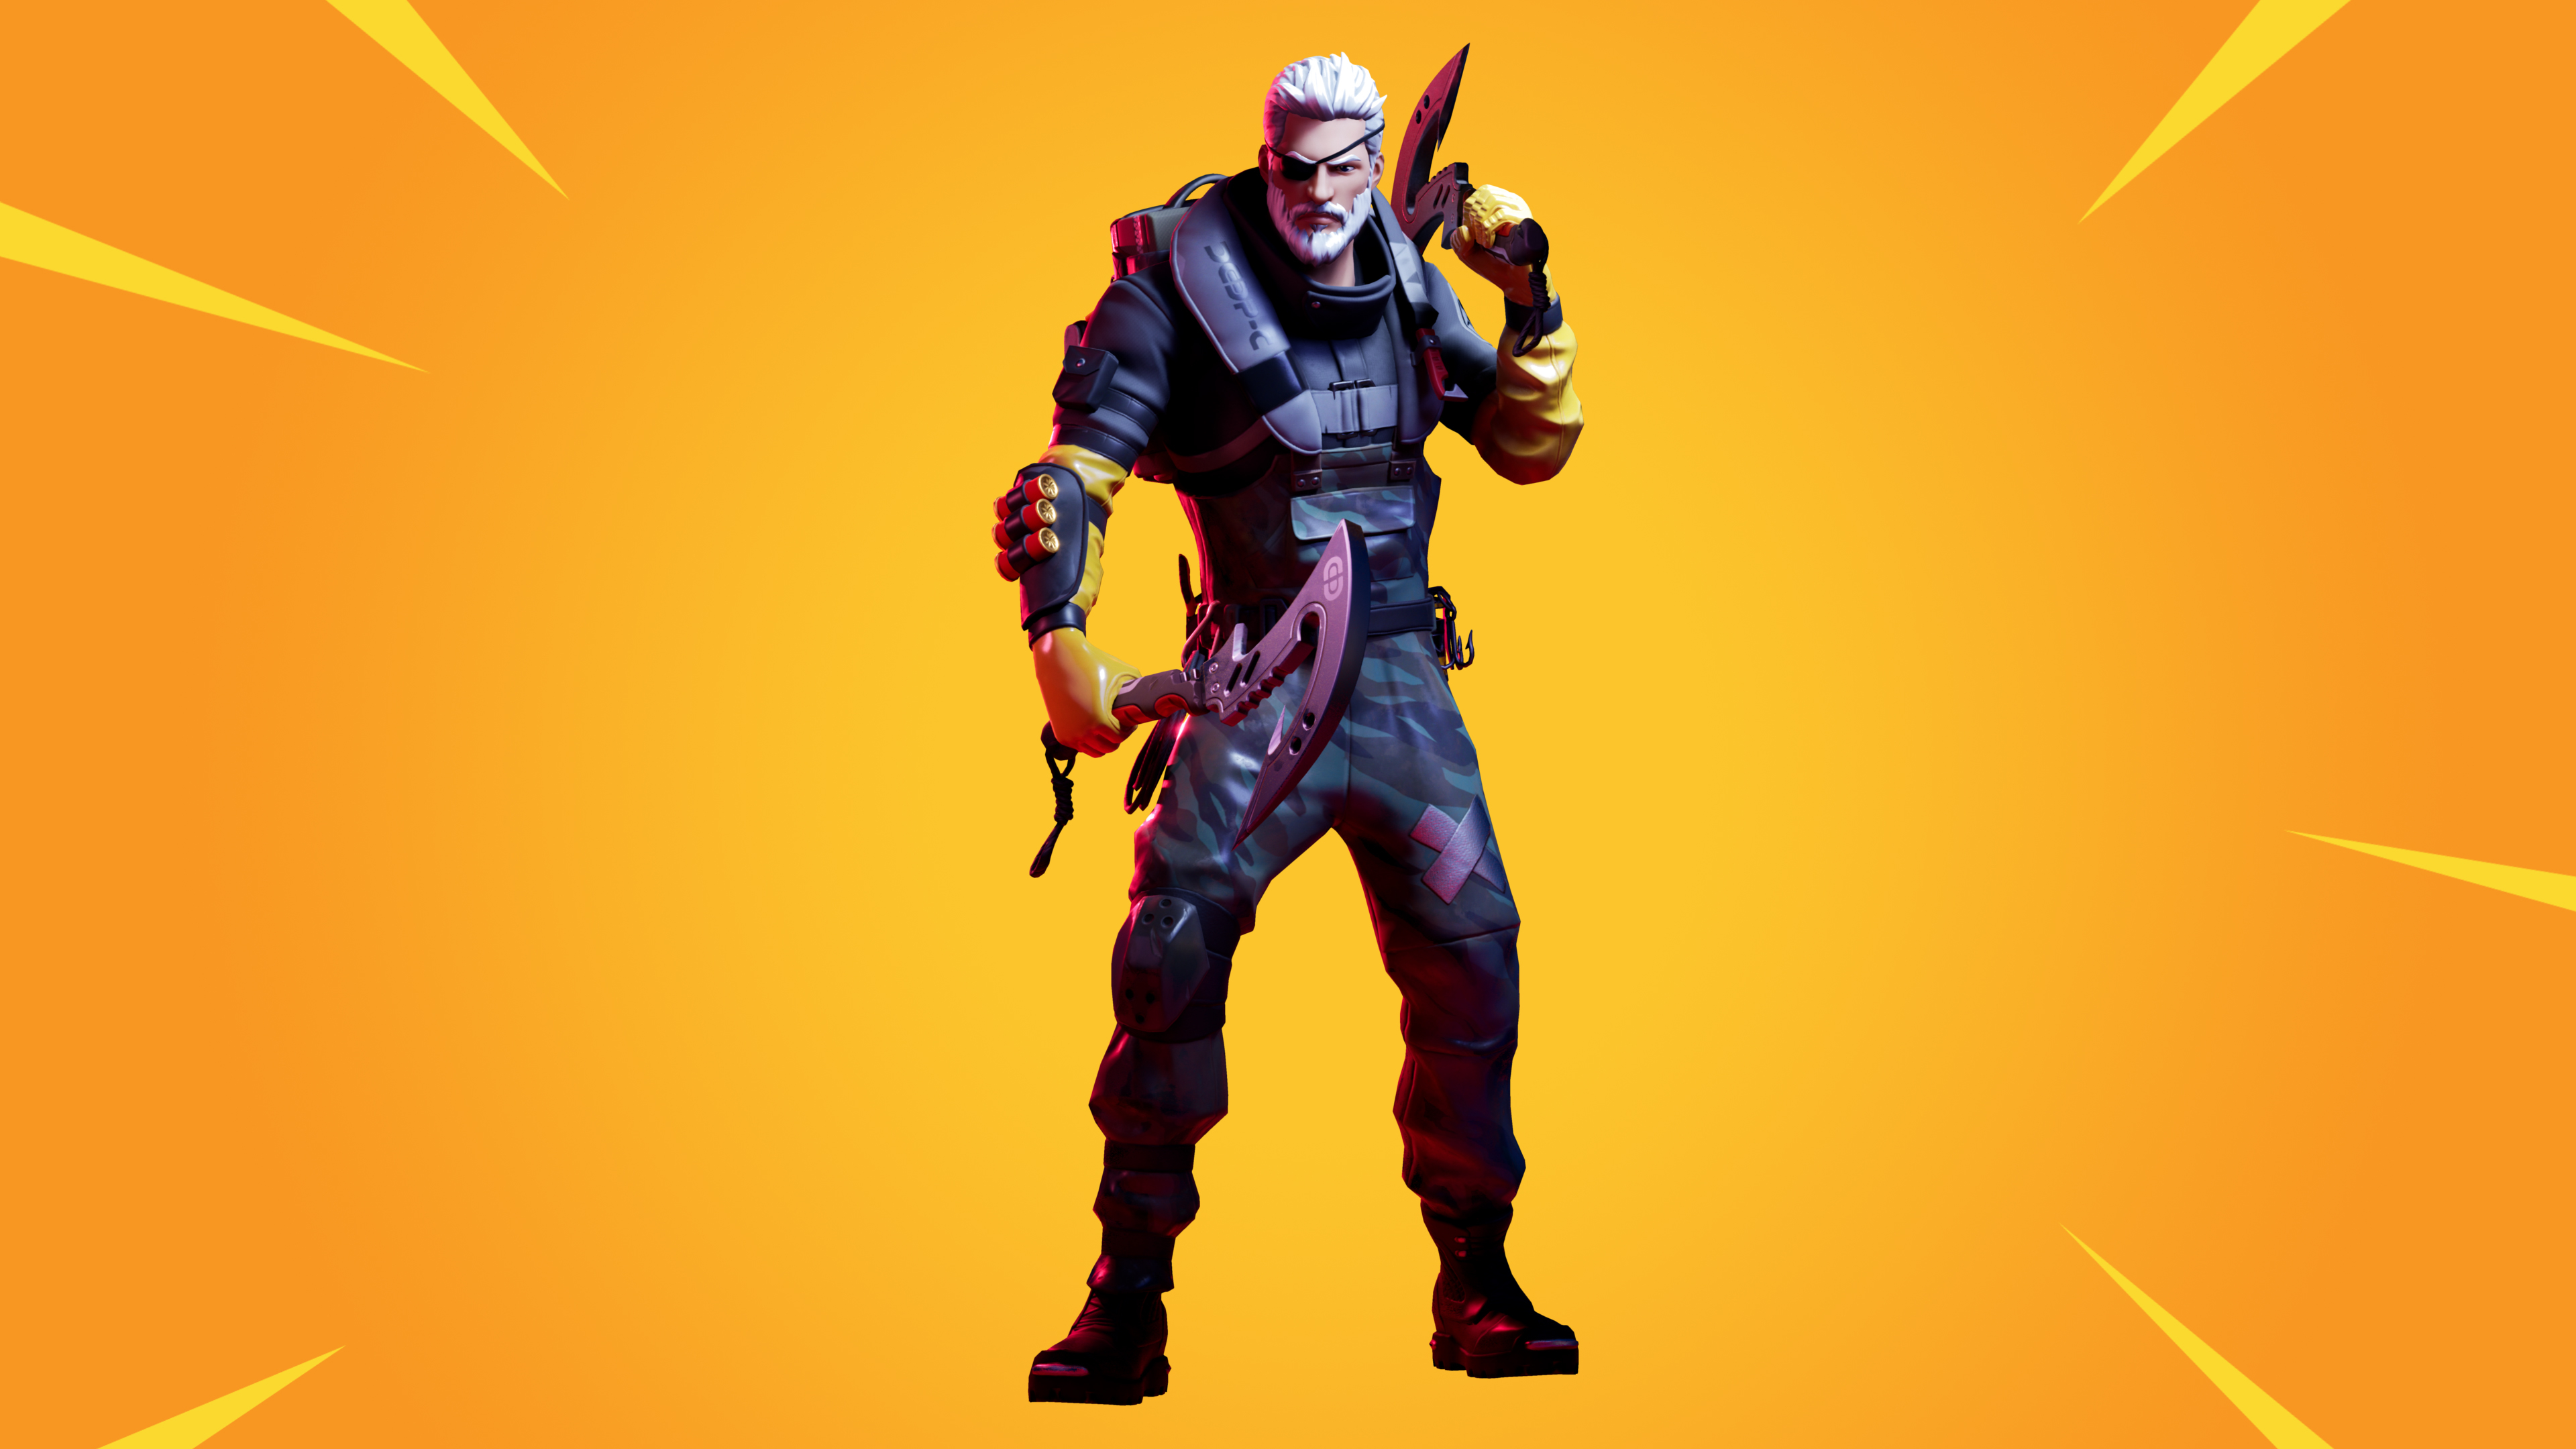 540x960 Riptide In Fortnite Chapter 2 540x960 Resolution Wallpaper Hd Games 4k Wallpapers Images Photos And Background